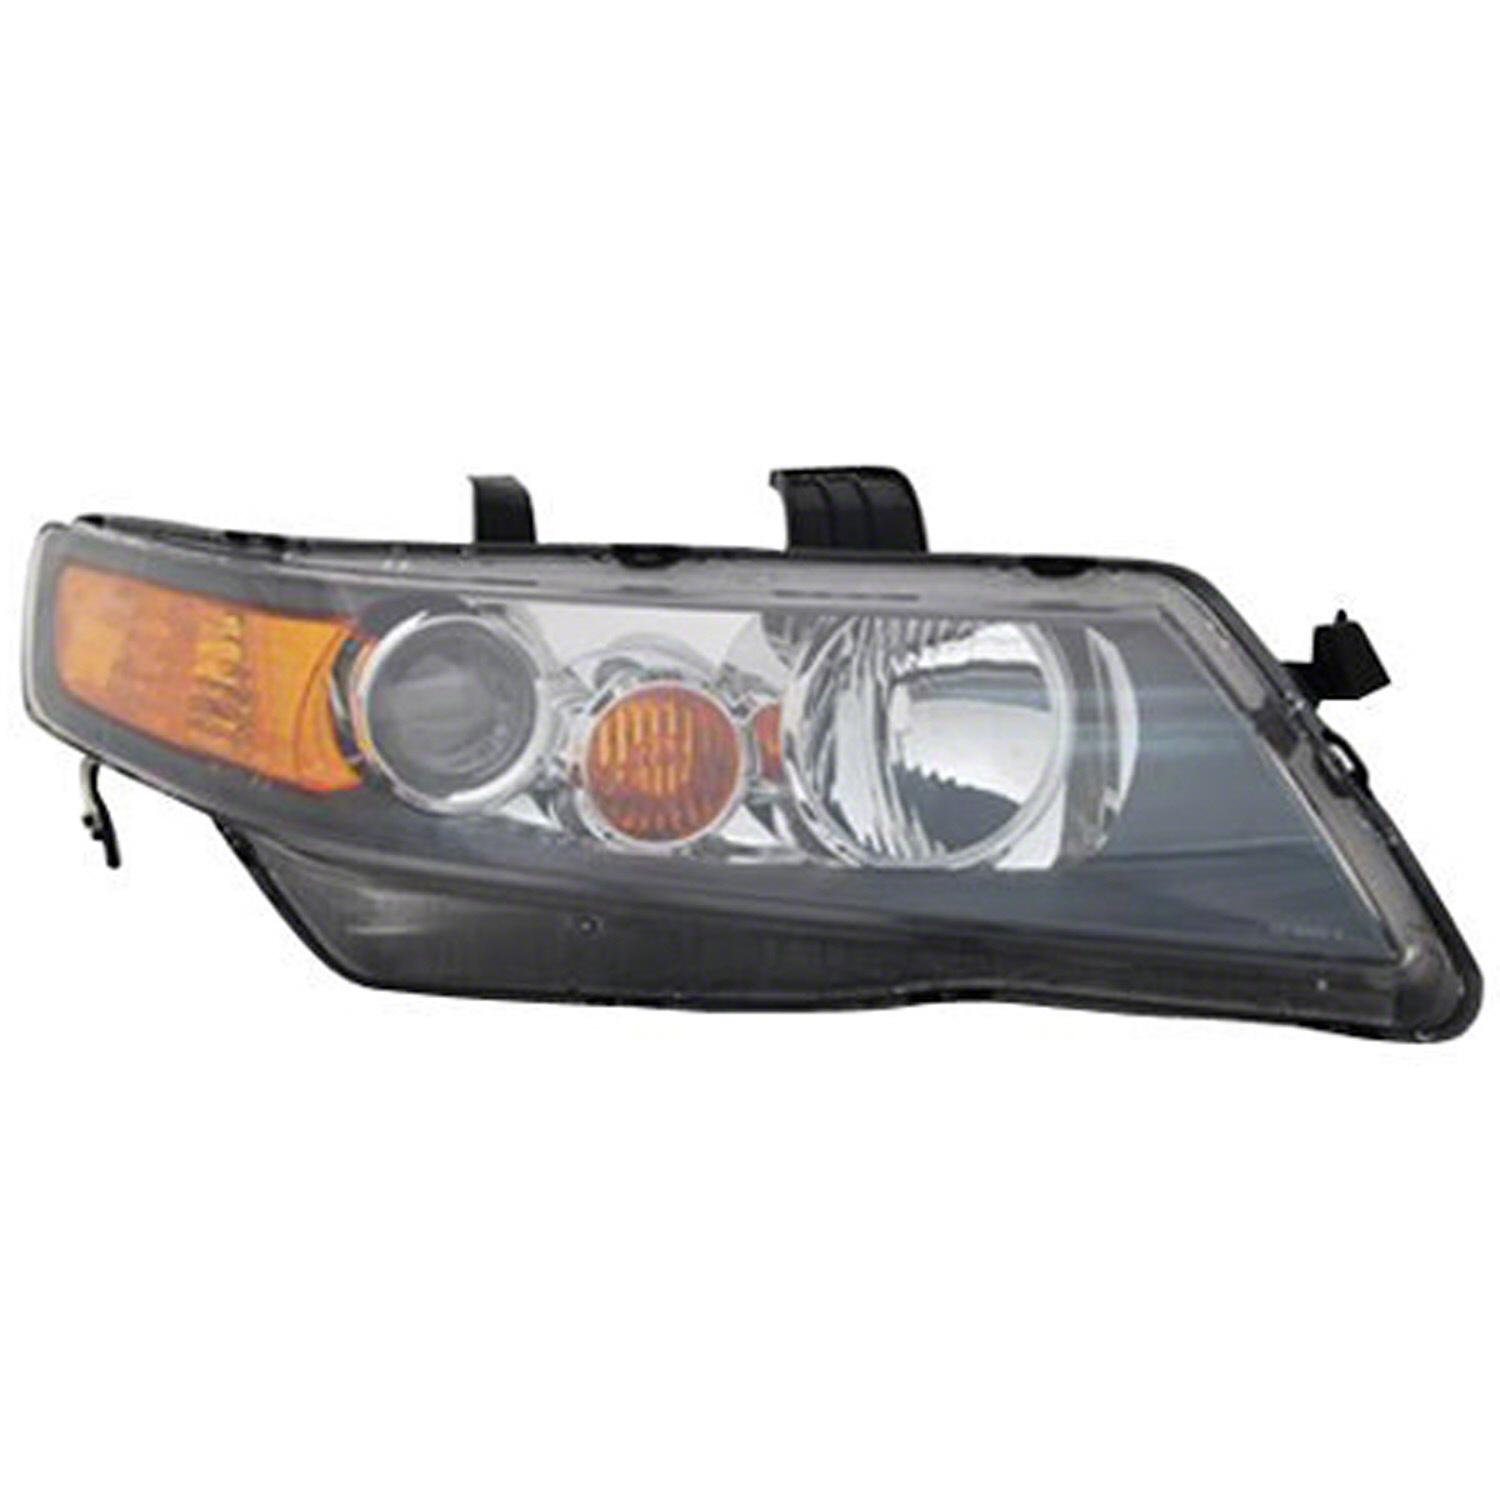 2008 Acura TSX Headlight Lens Housing